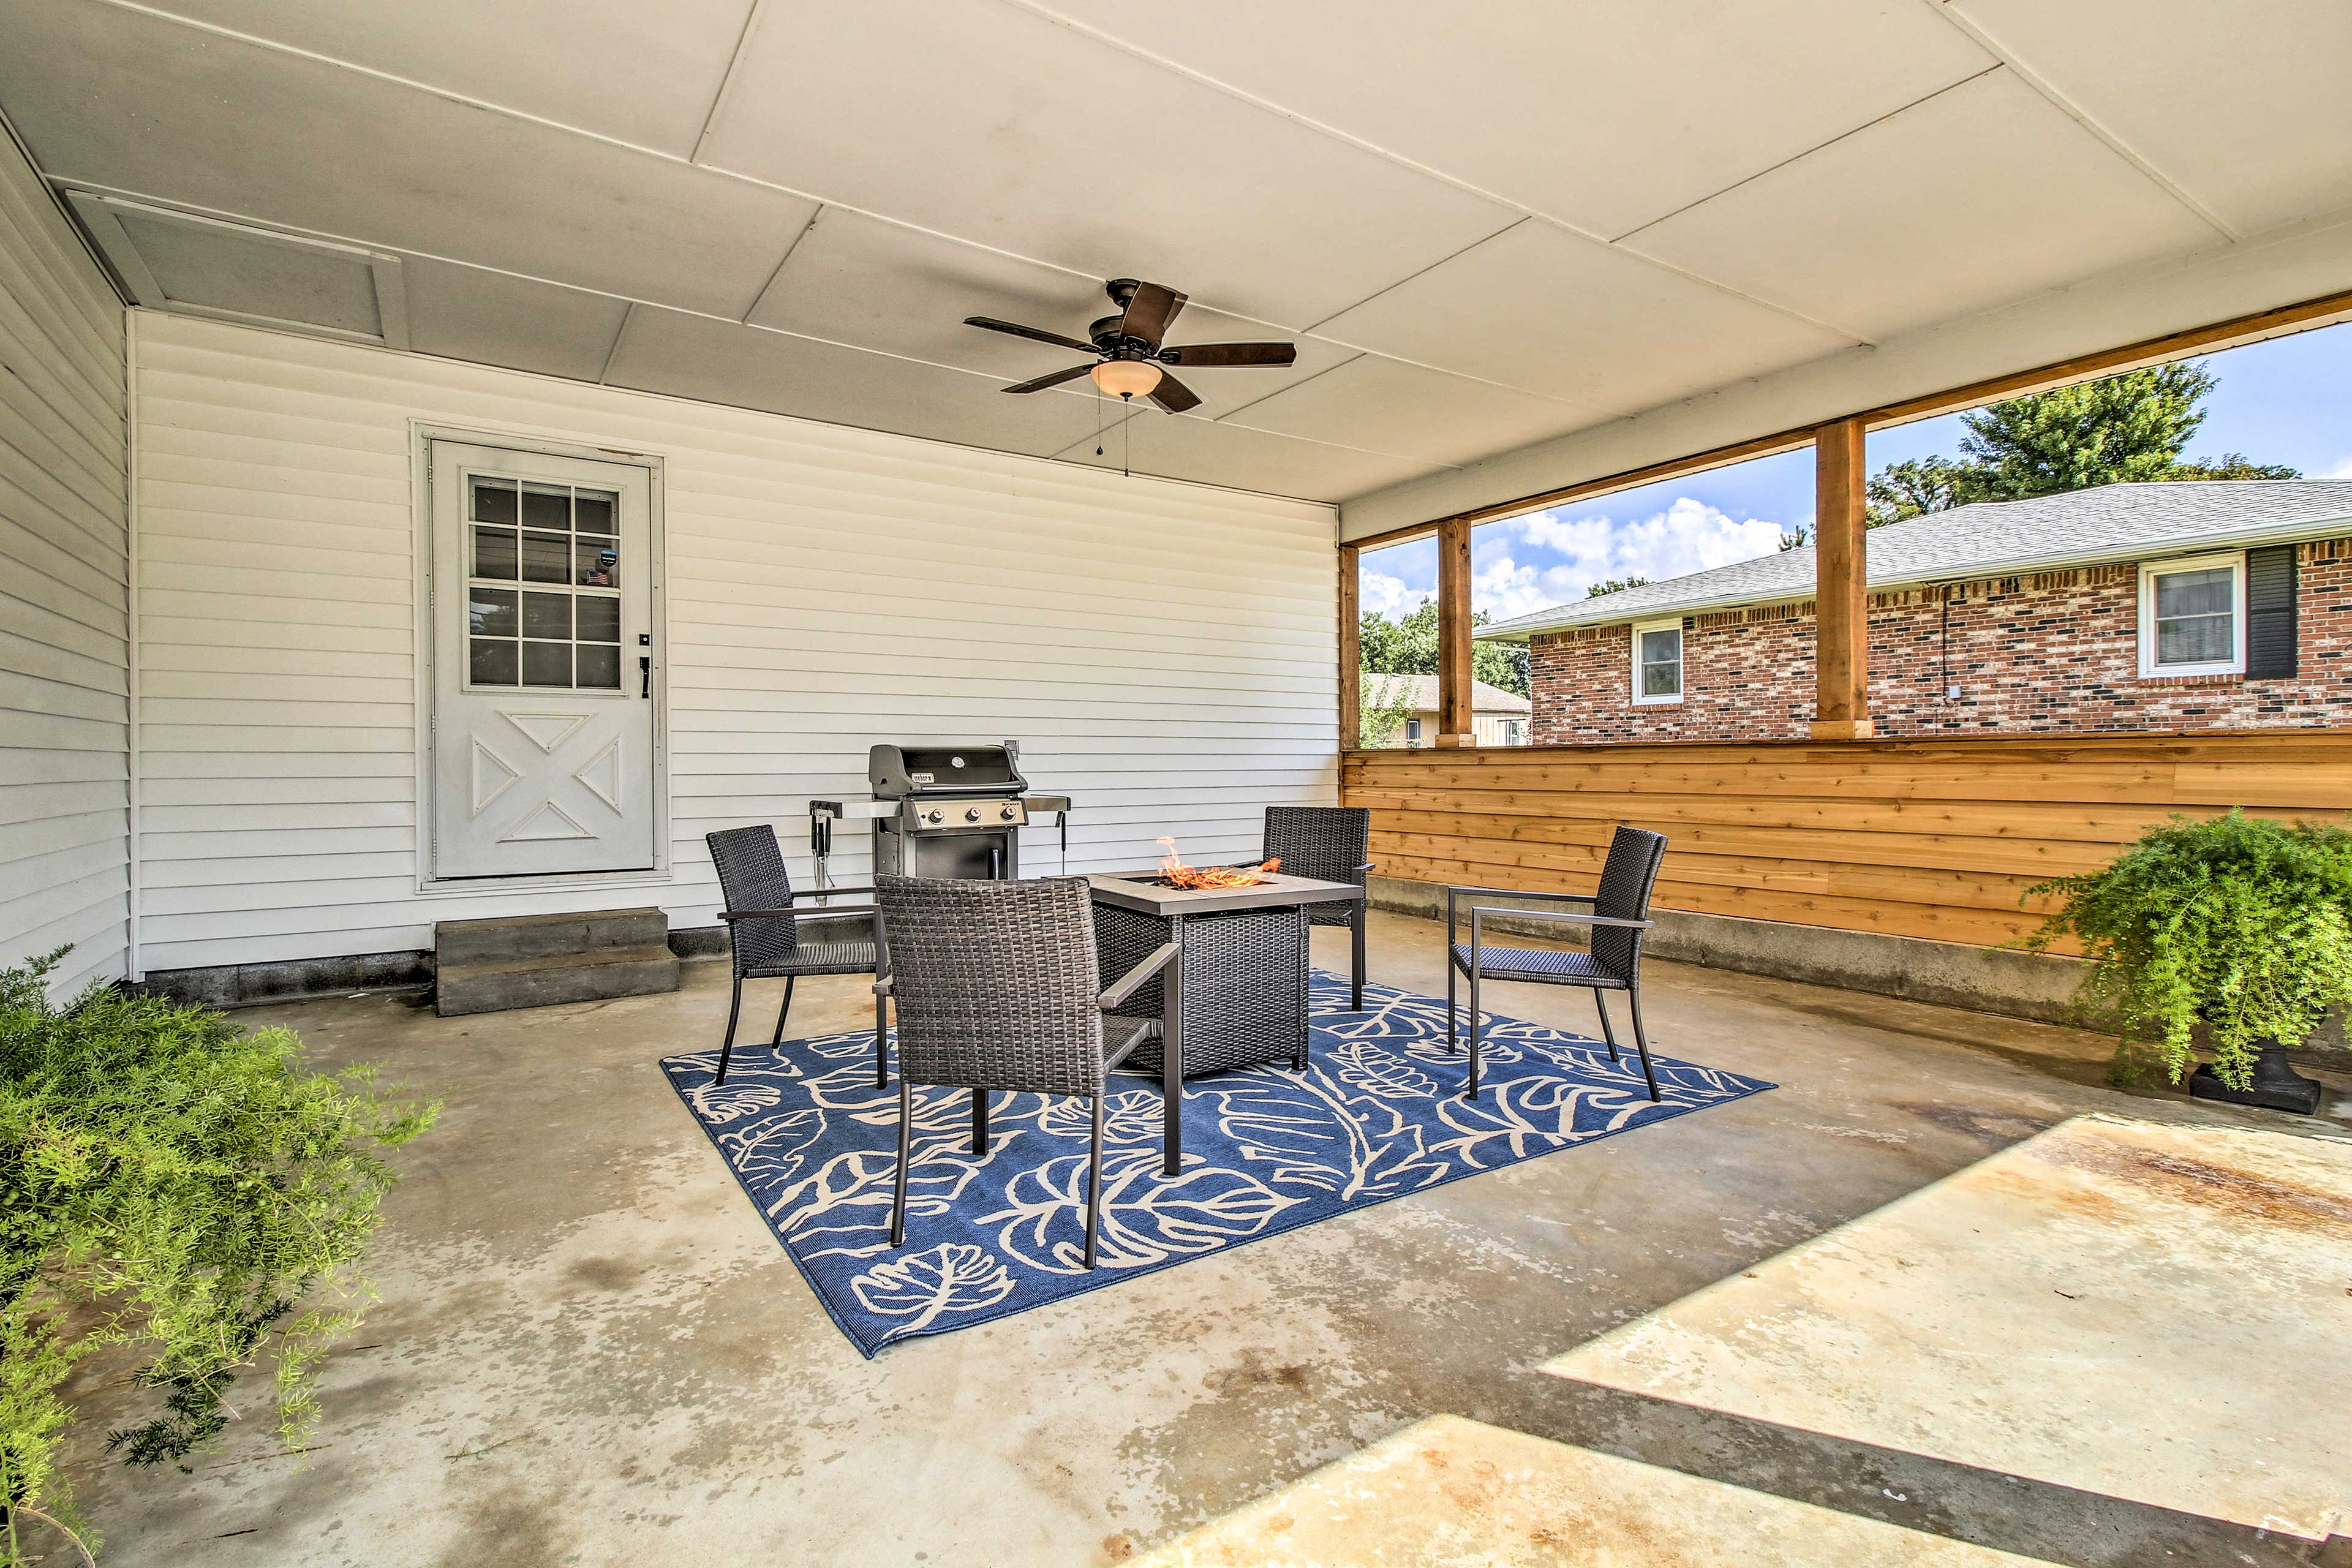 Your group will spend most of their time on the patio.